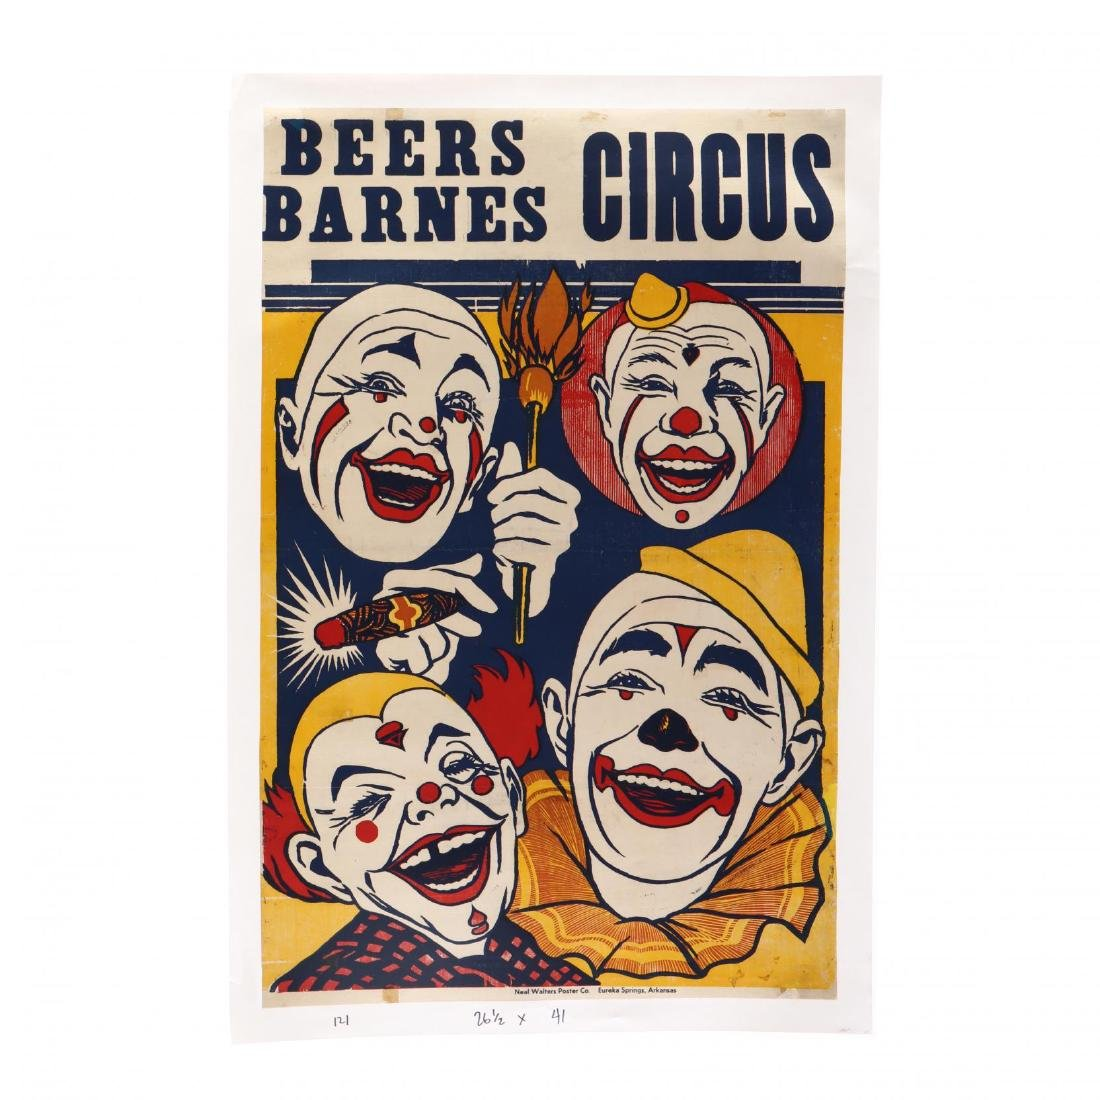 Beers-Barnes Circus, Vintage Poster, Four Clowns